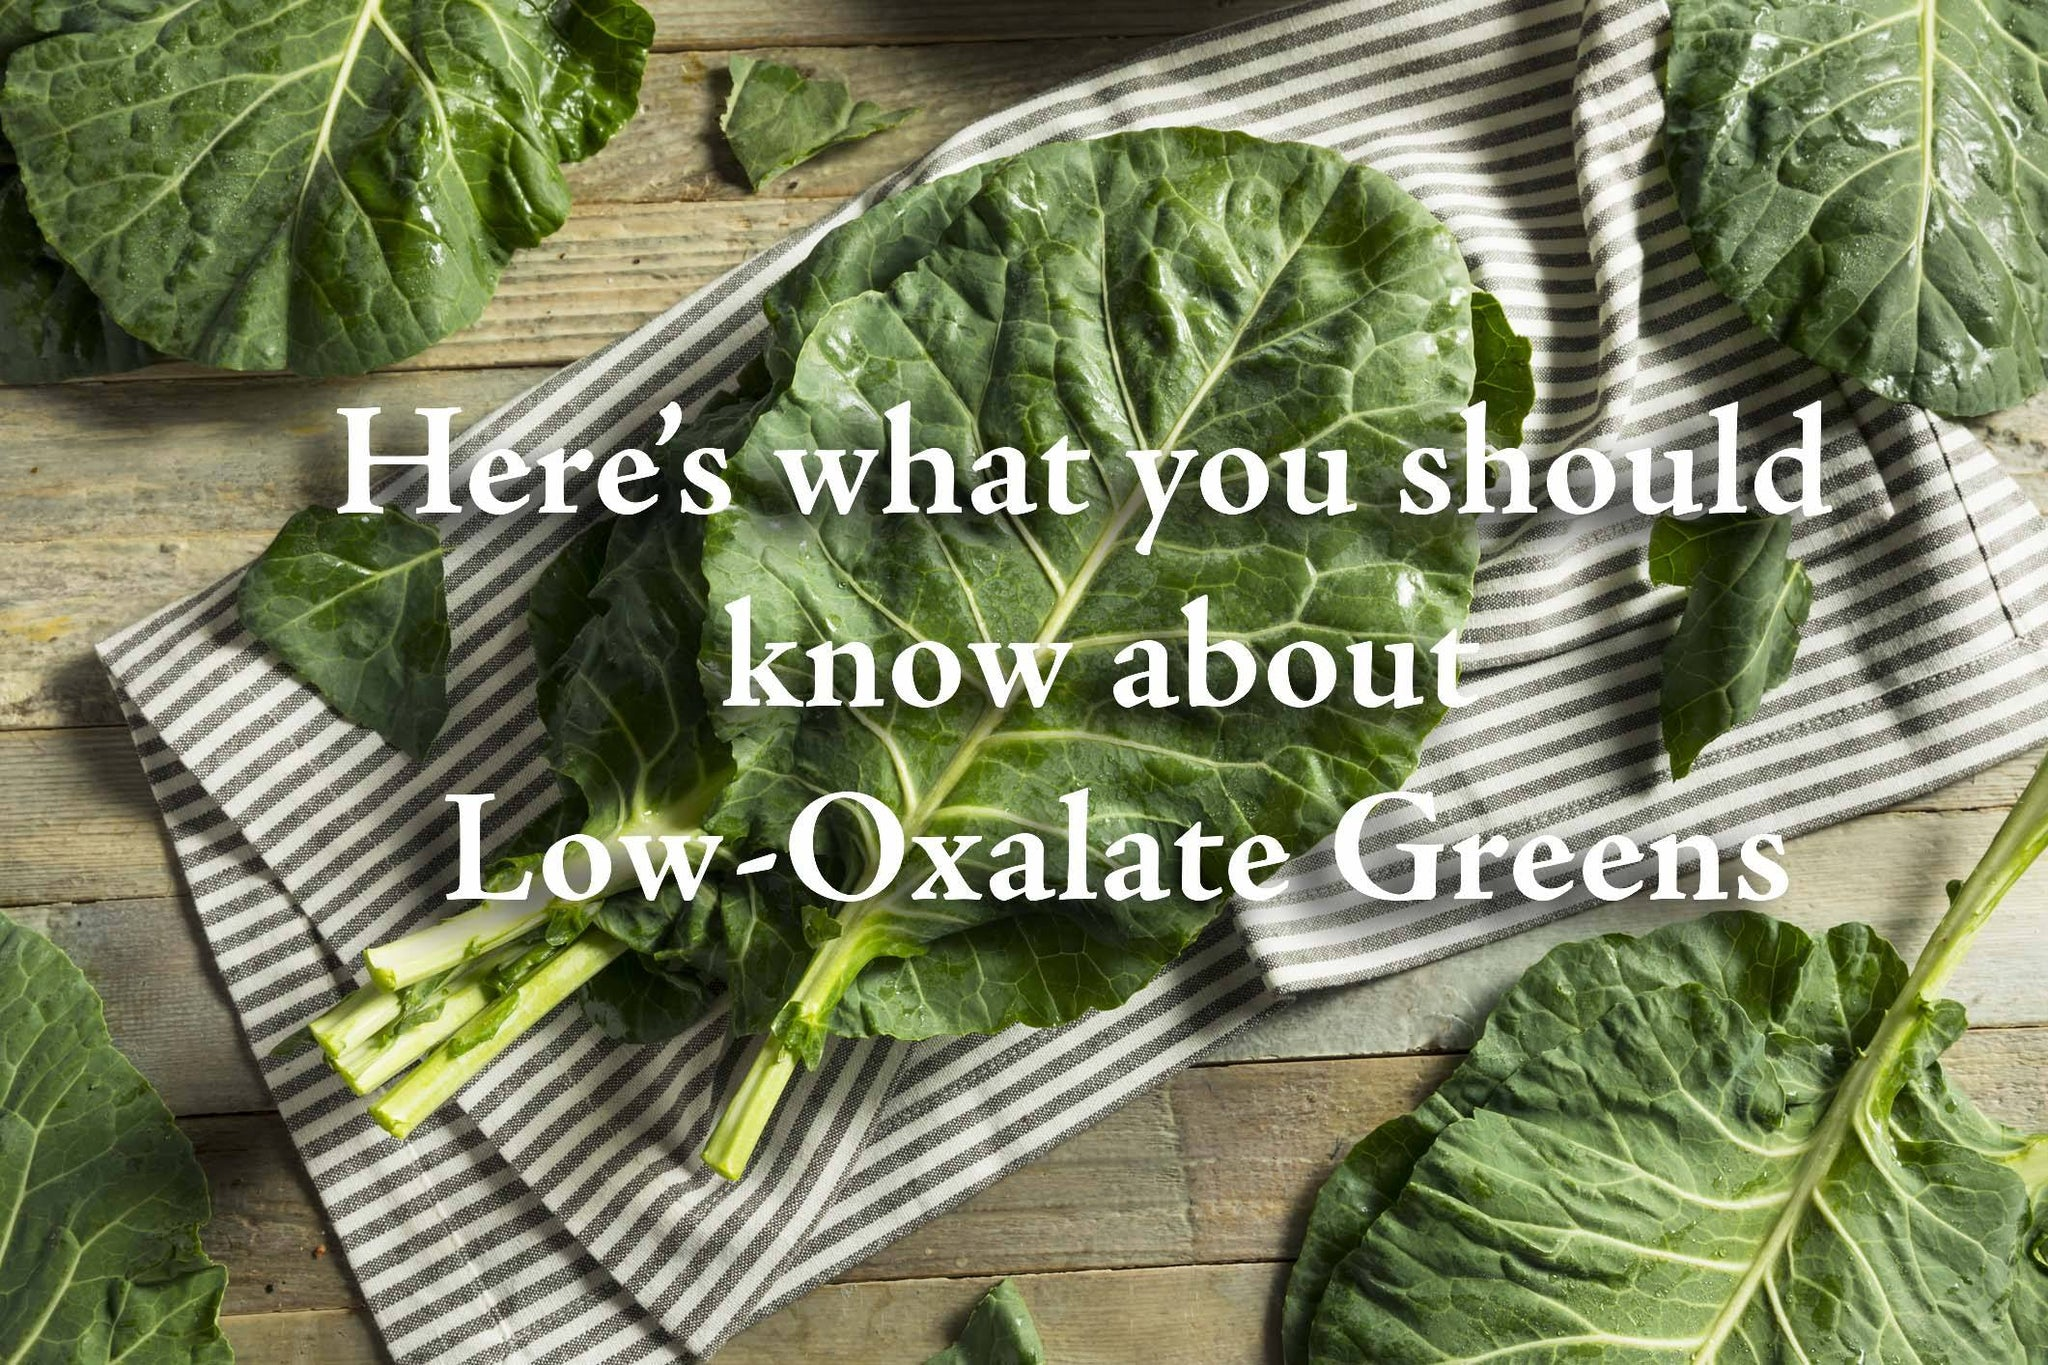 Here's What You Should Know About Low-Oxalate Greens!